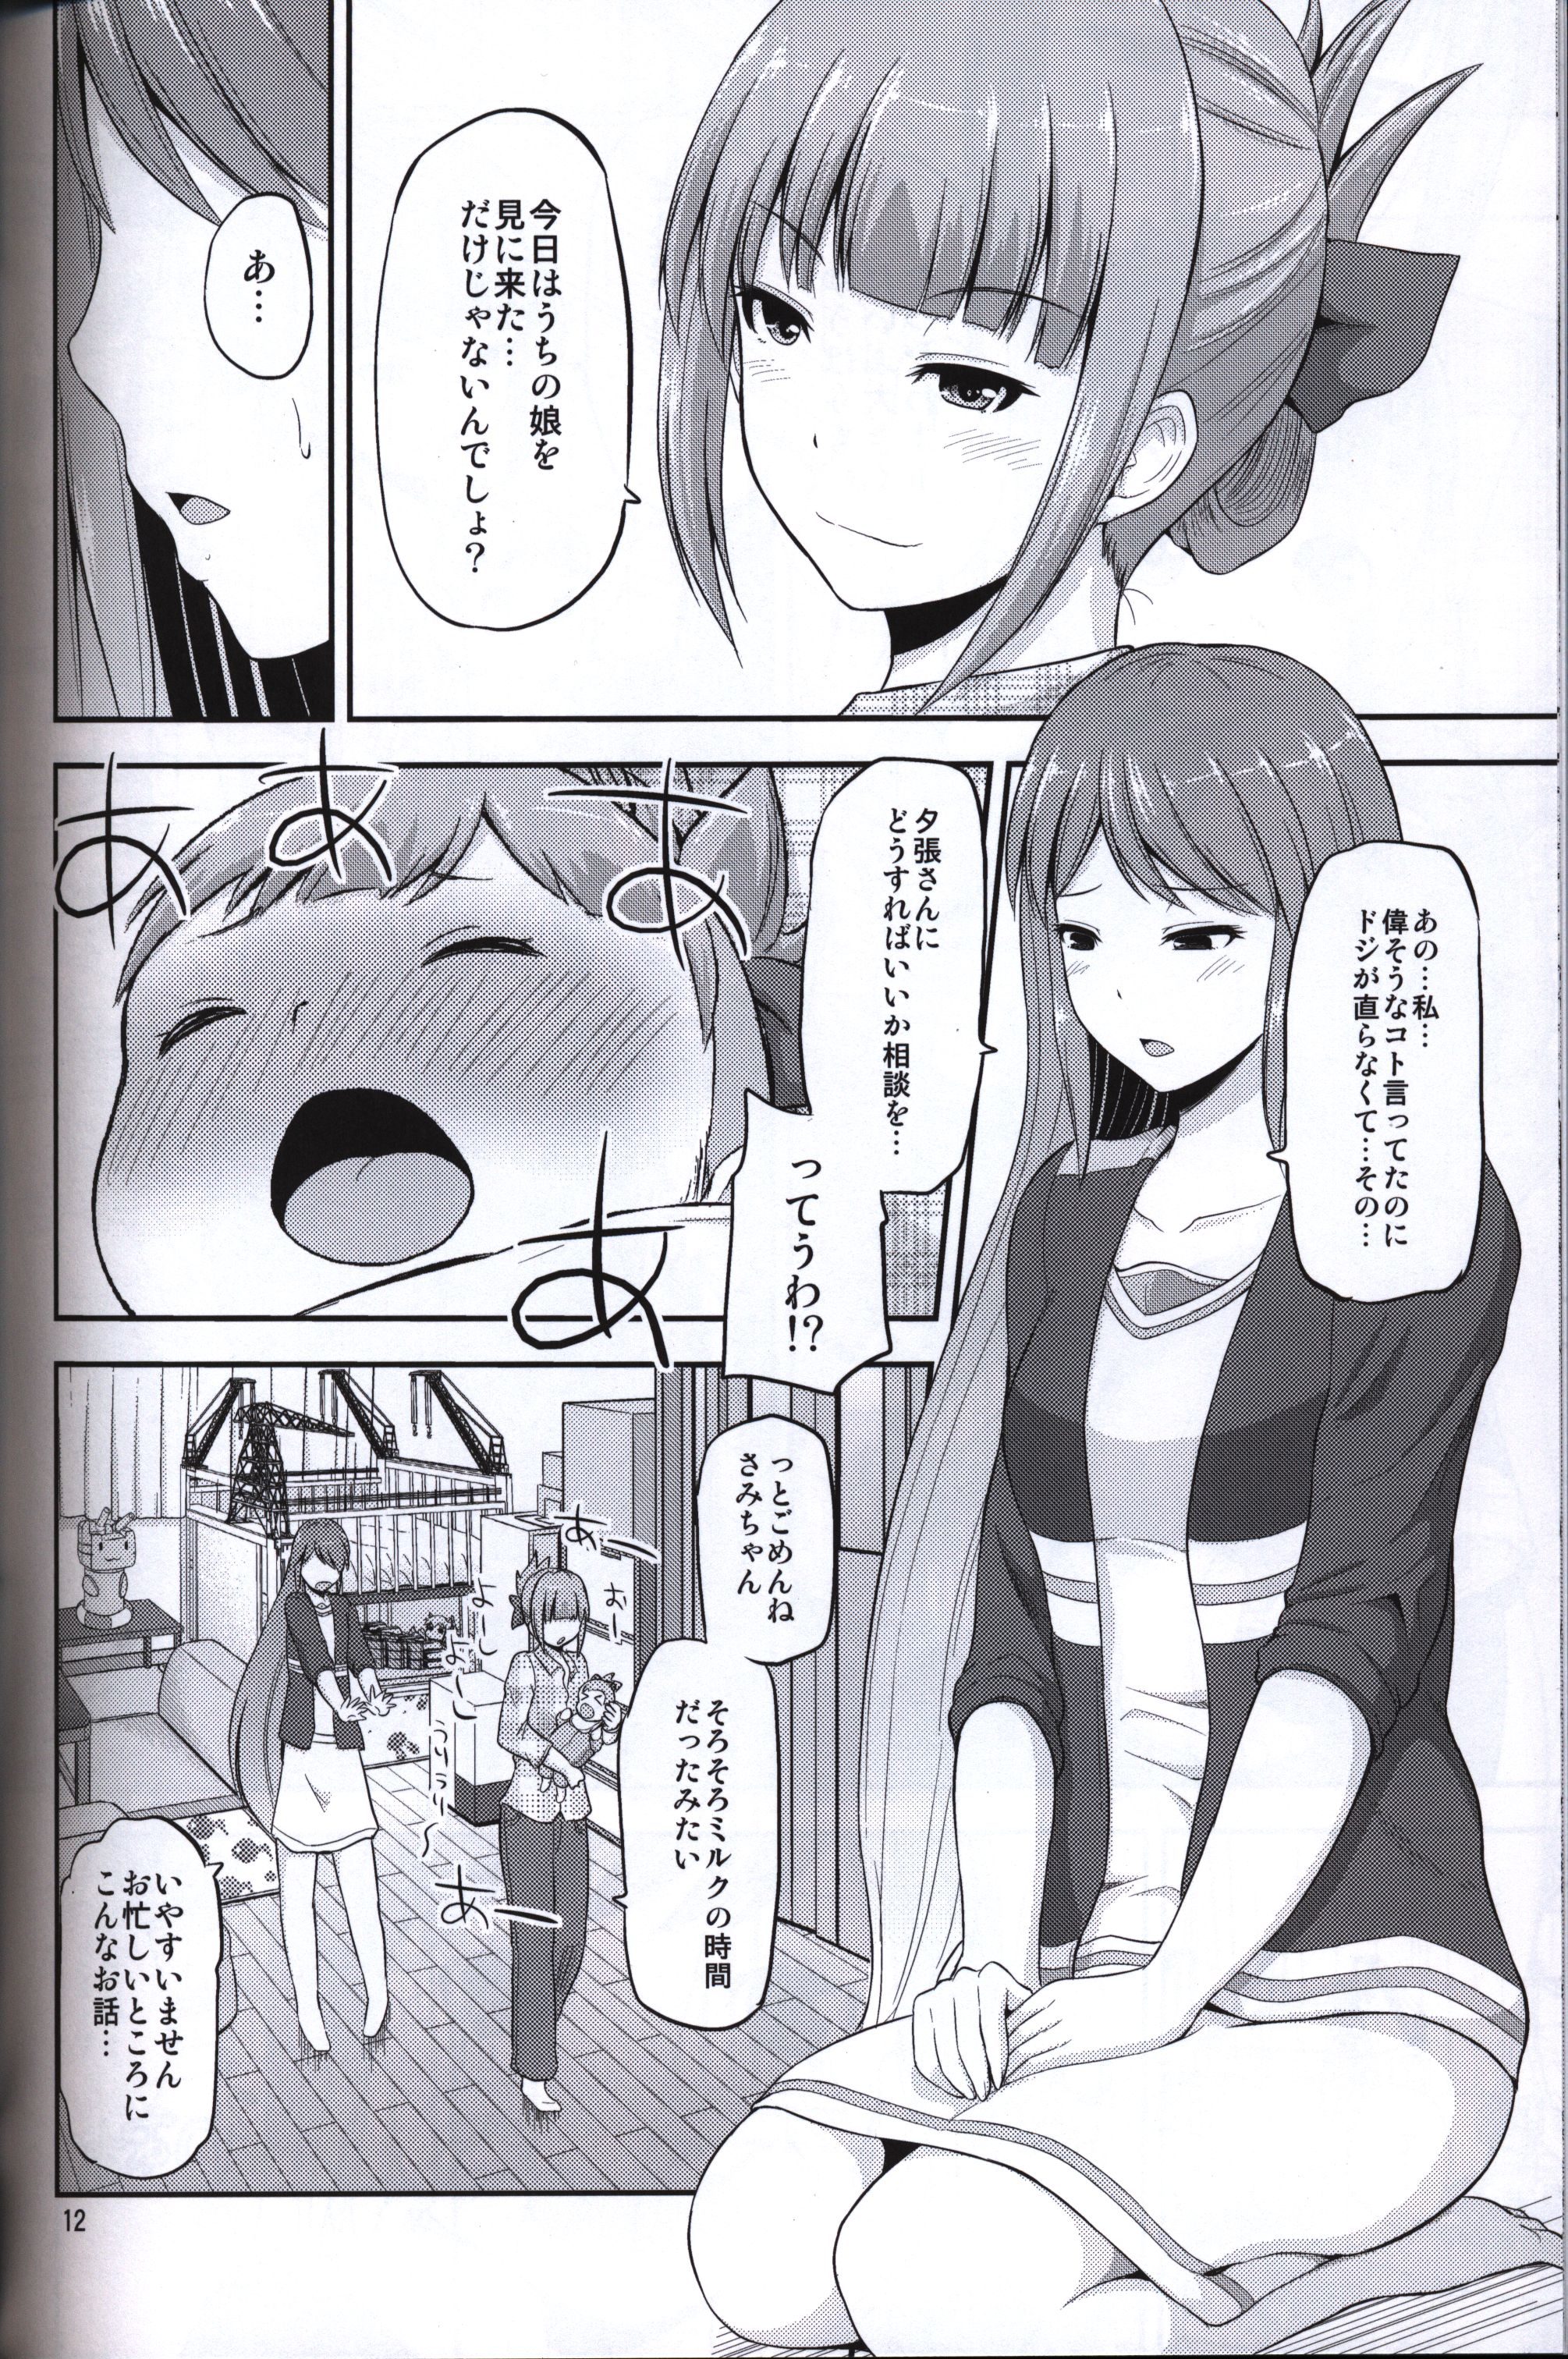 Doujinshi - Kantai Collection / Samidare (Kan Colle) (艦隊これくしょん-艦これ- 五月雨25歳の憂鬱) / Hoshimaki Project